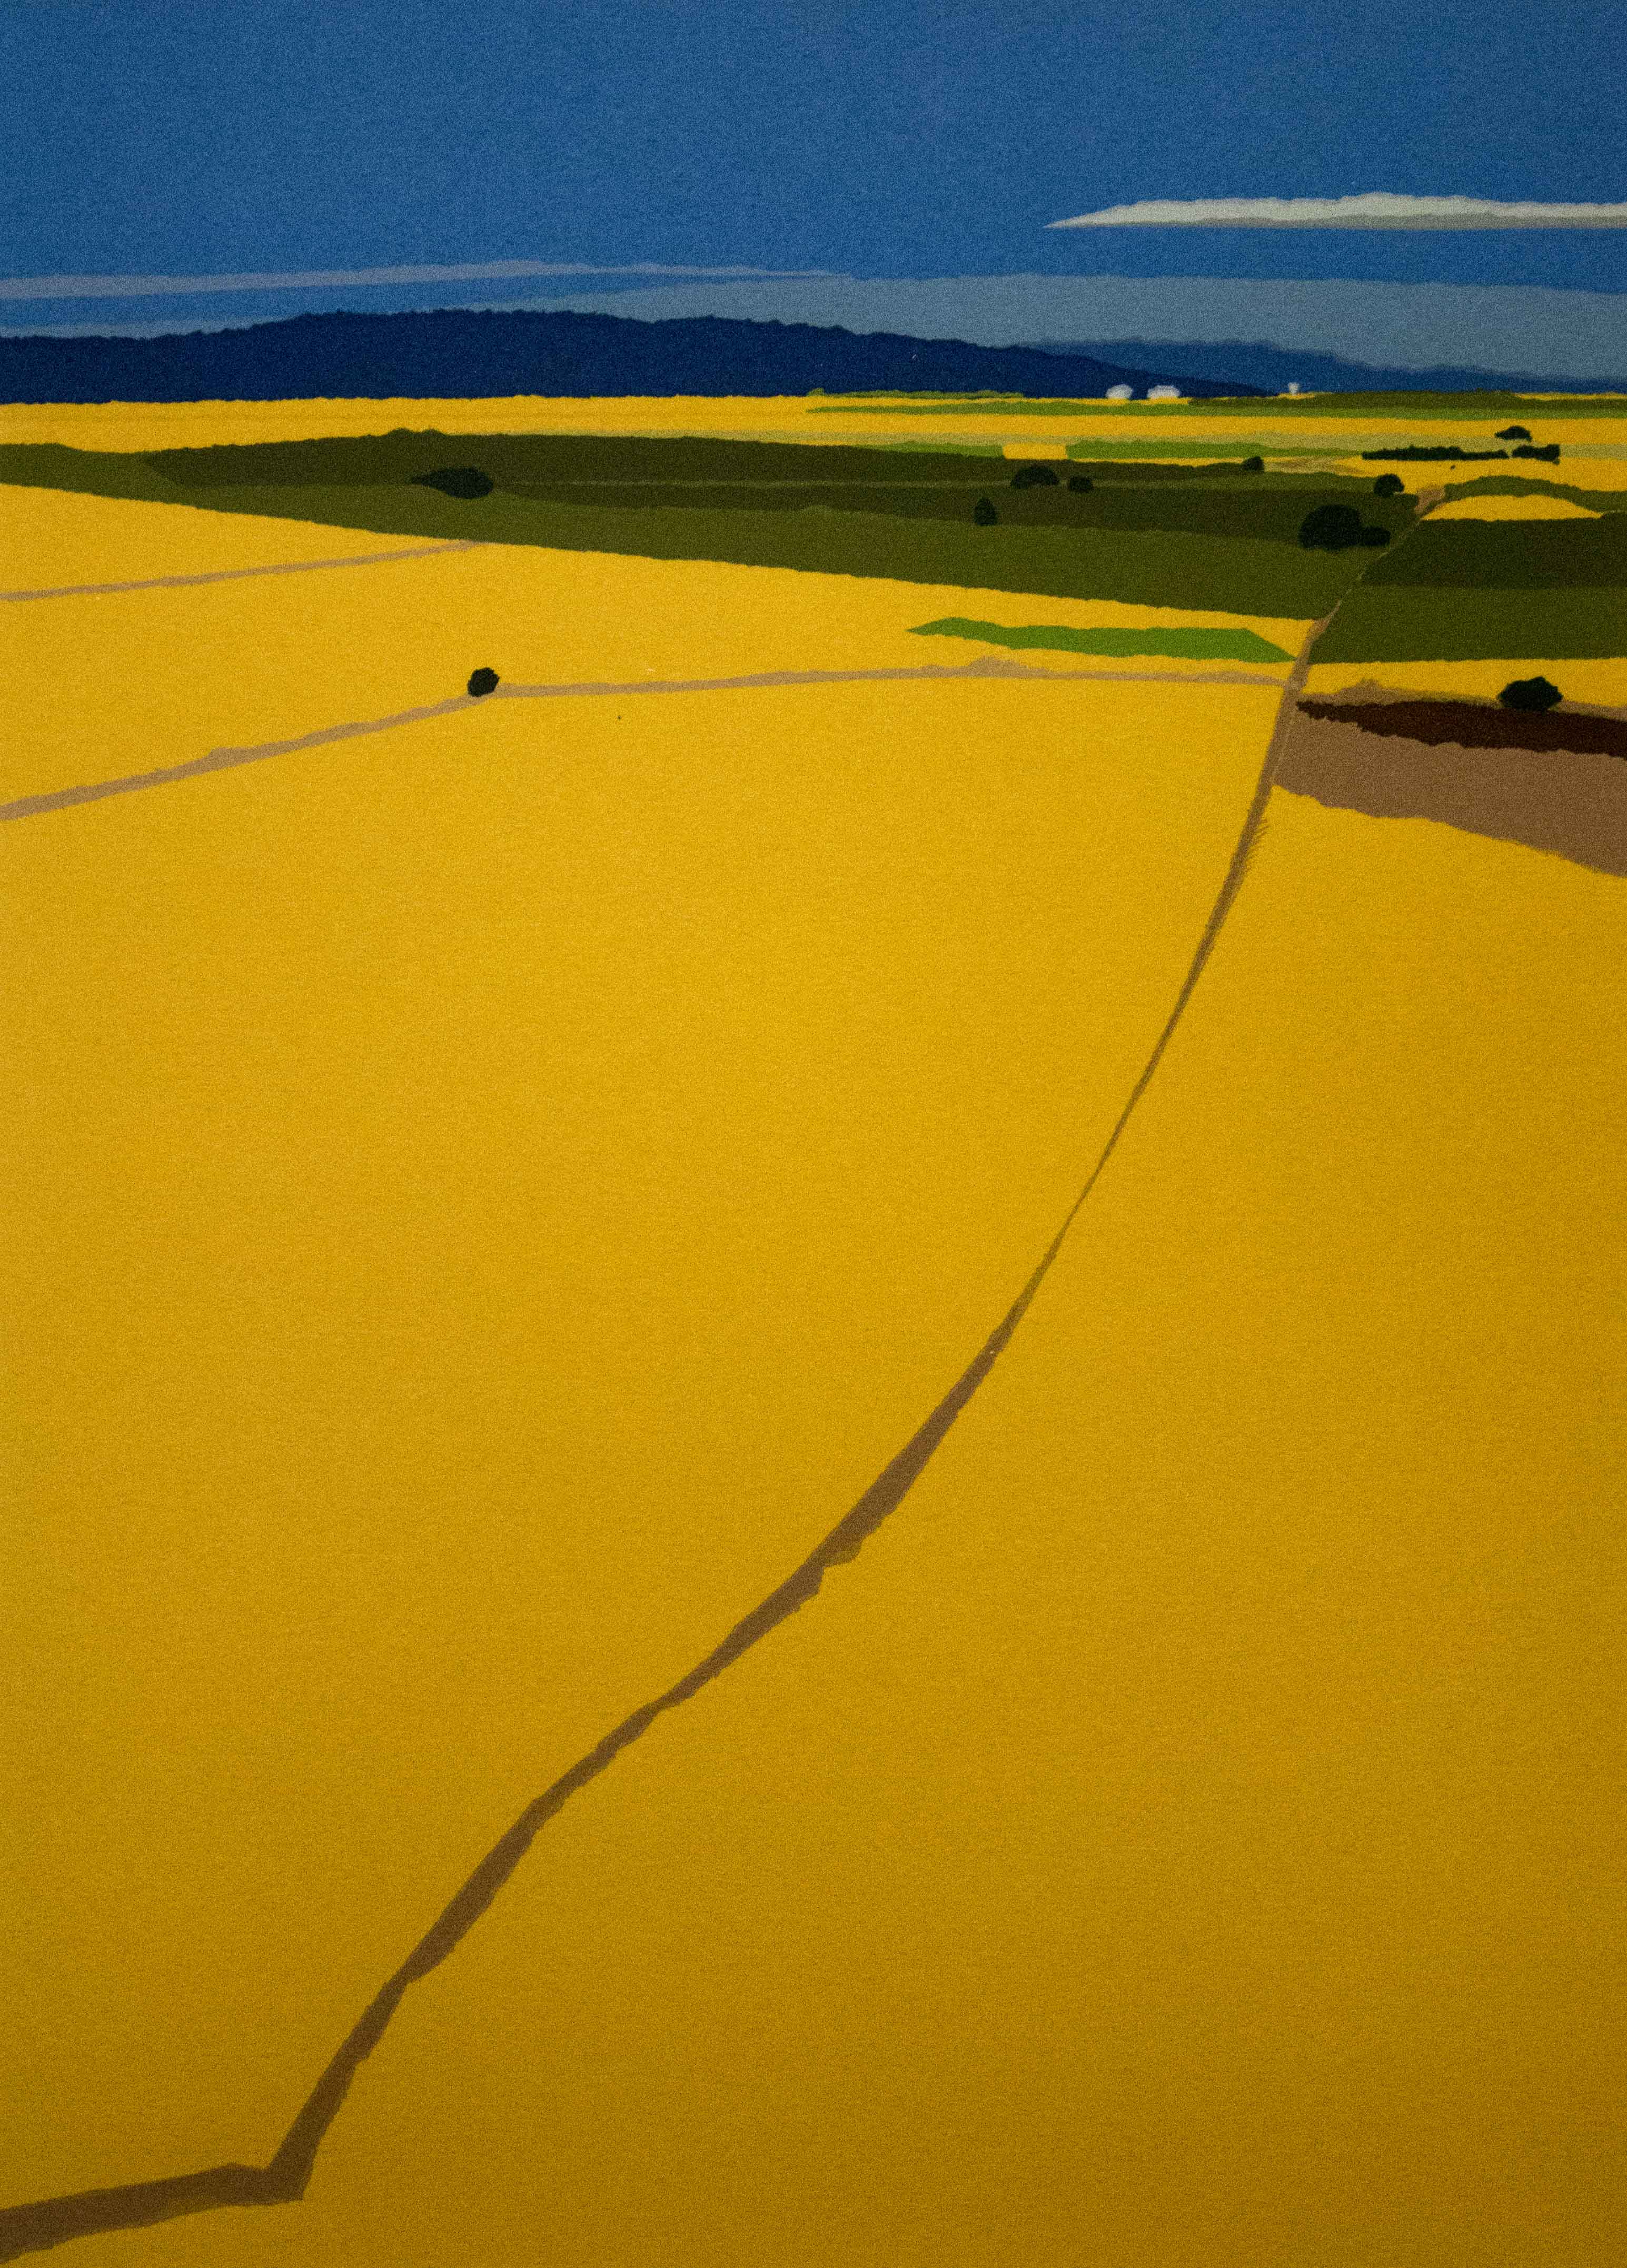 silk screen image of wheat fields from an aerial angle